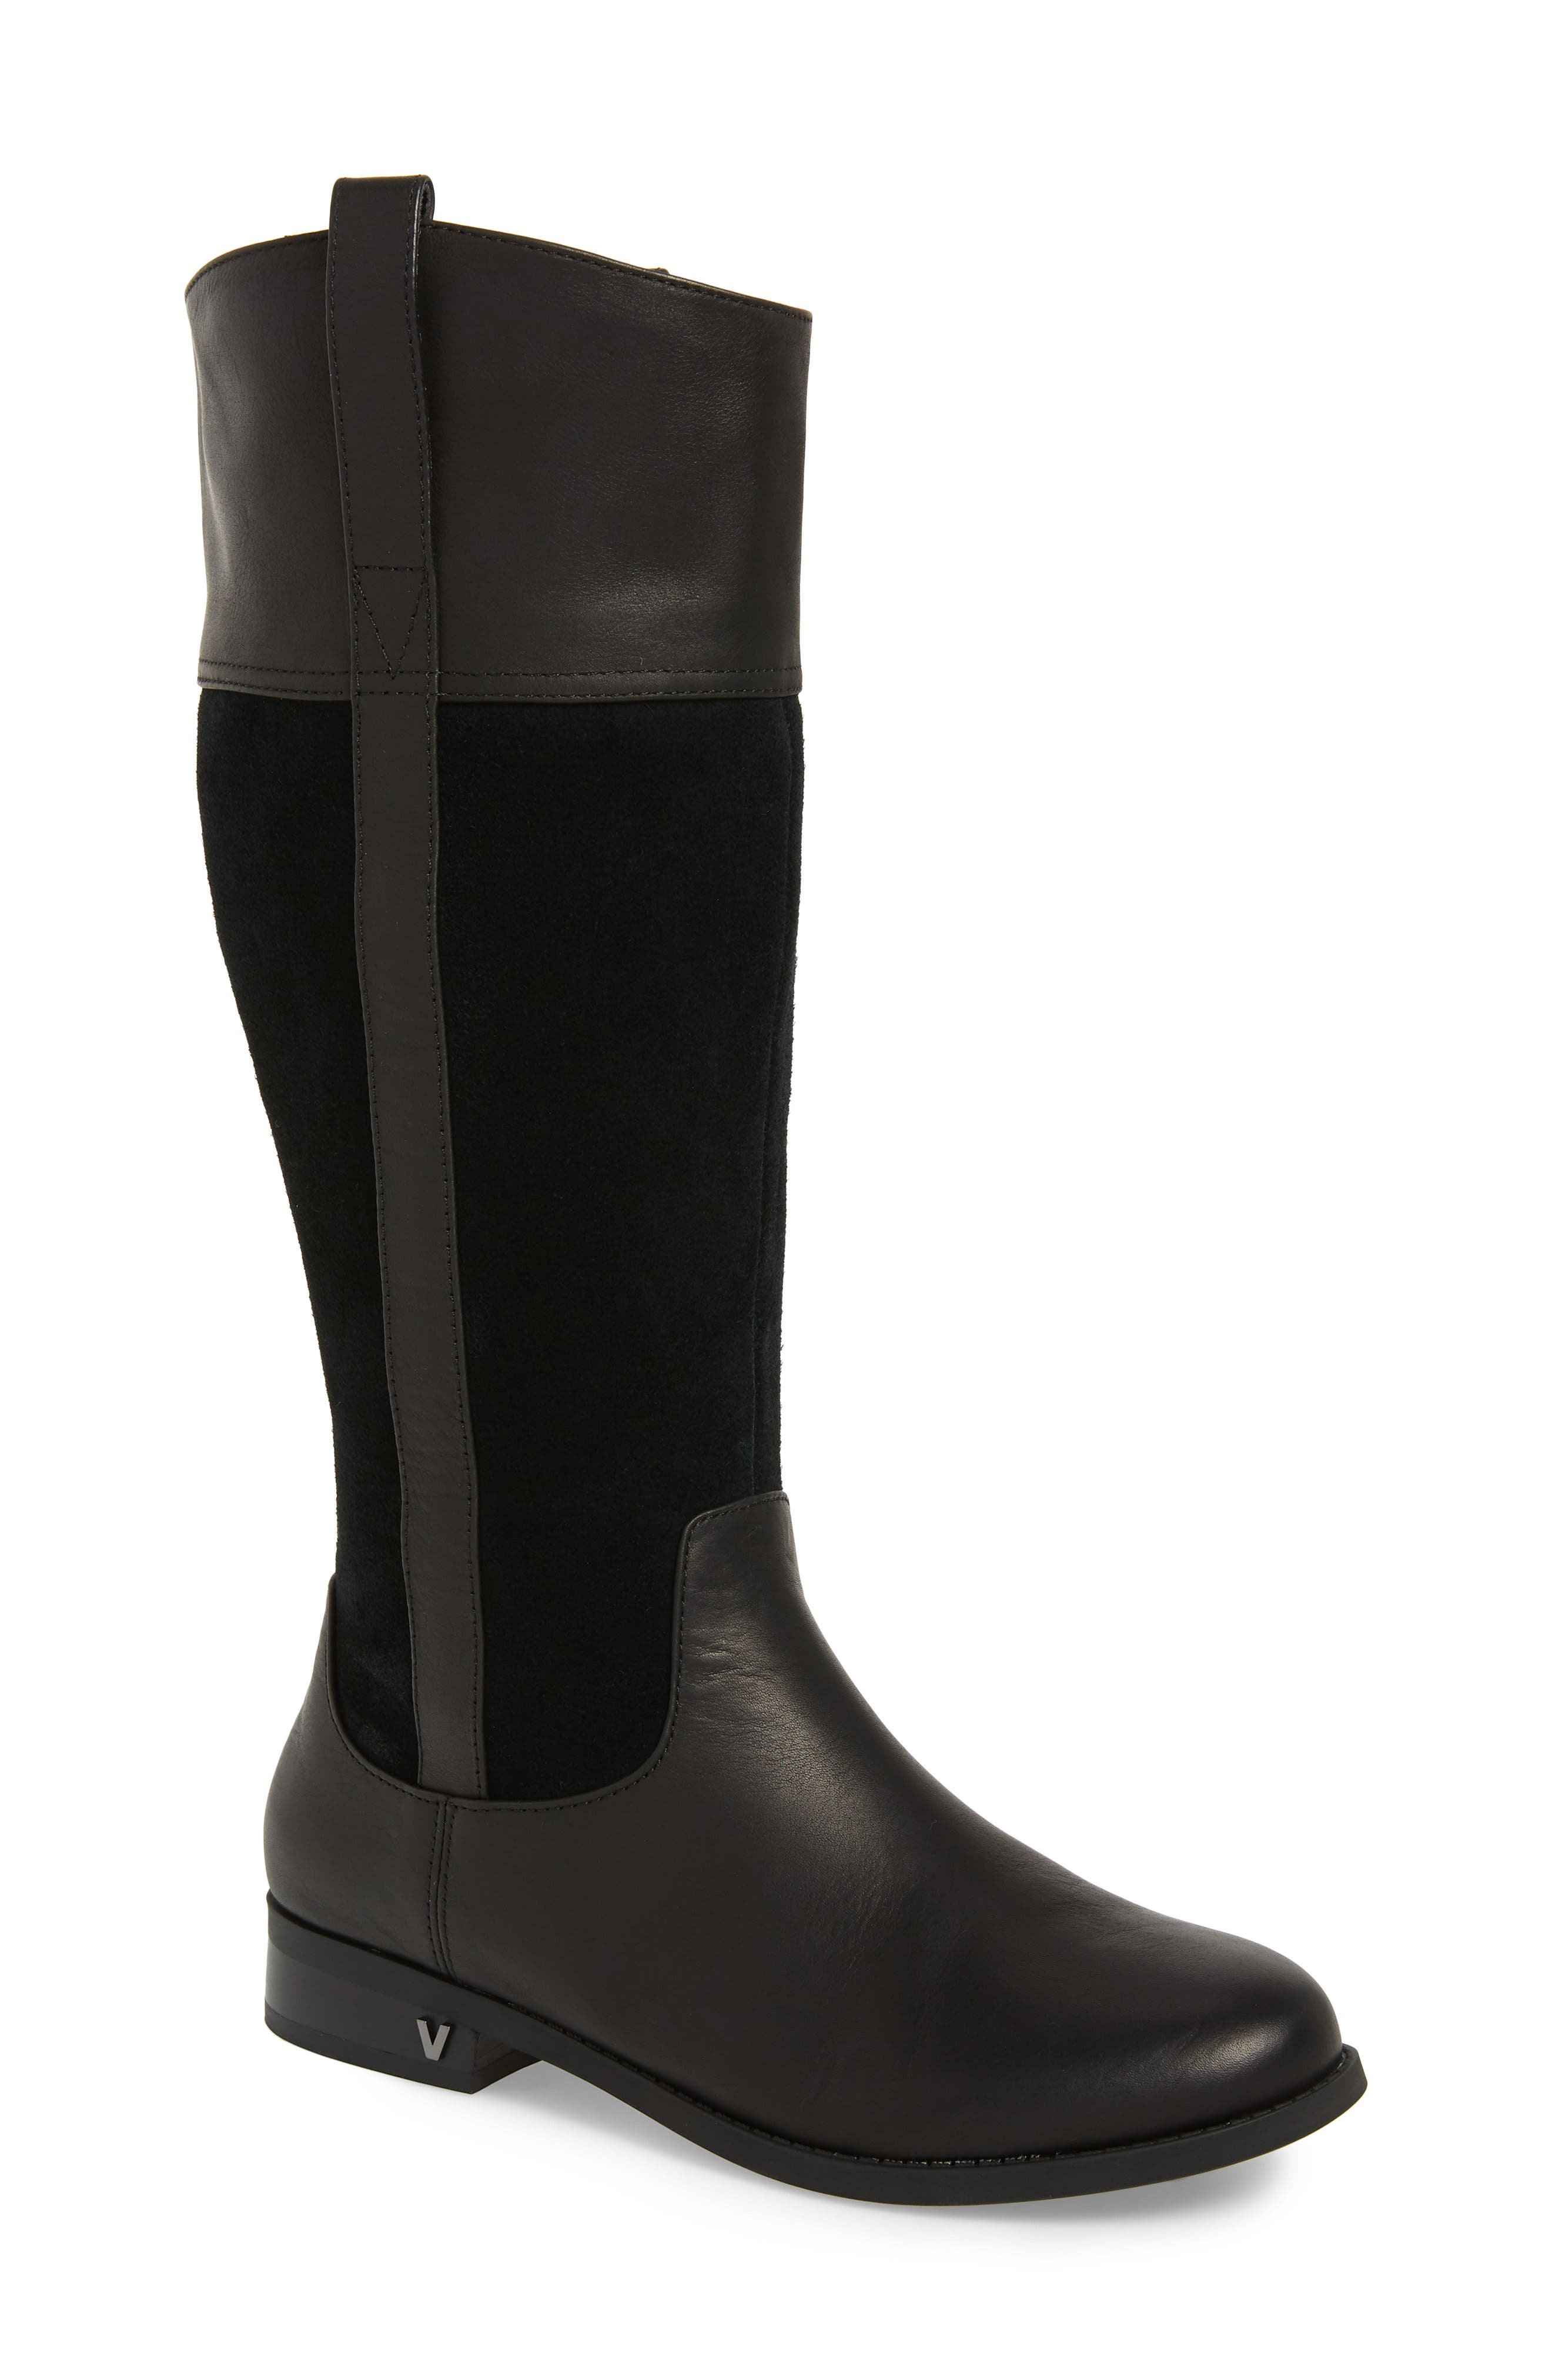 Vionic Downing Boot- Black